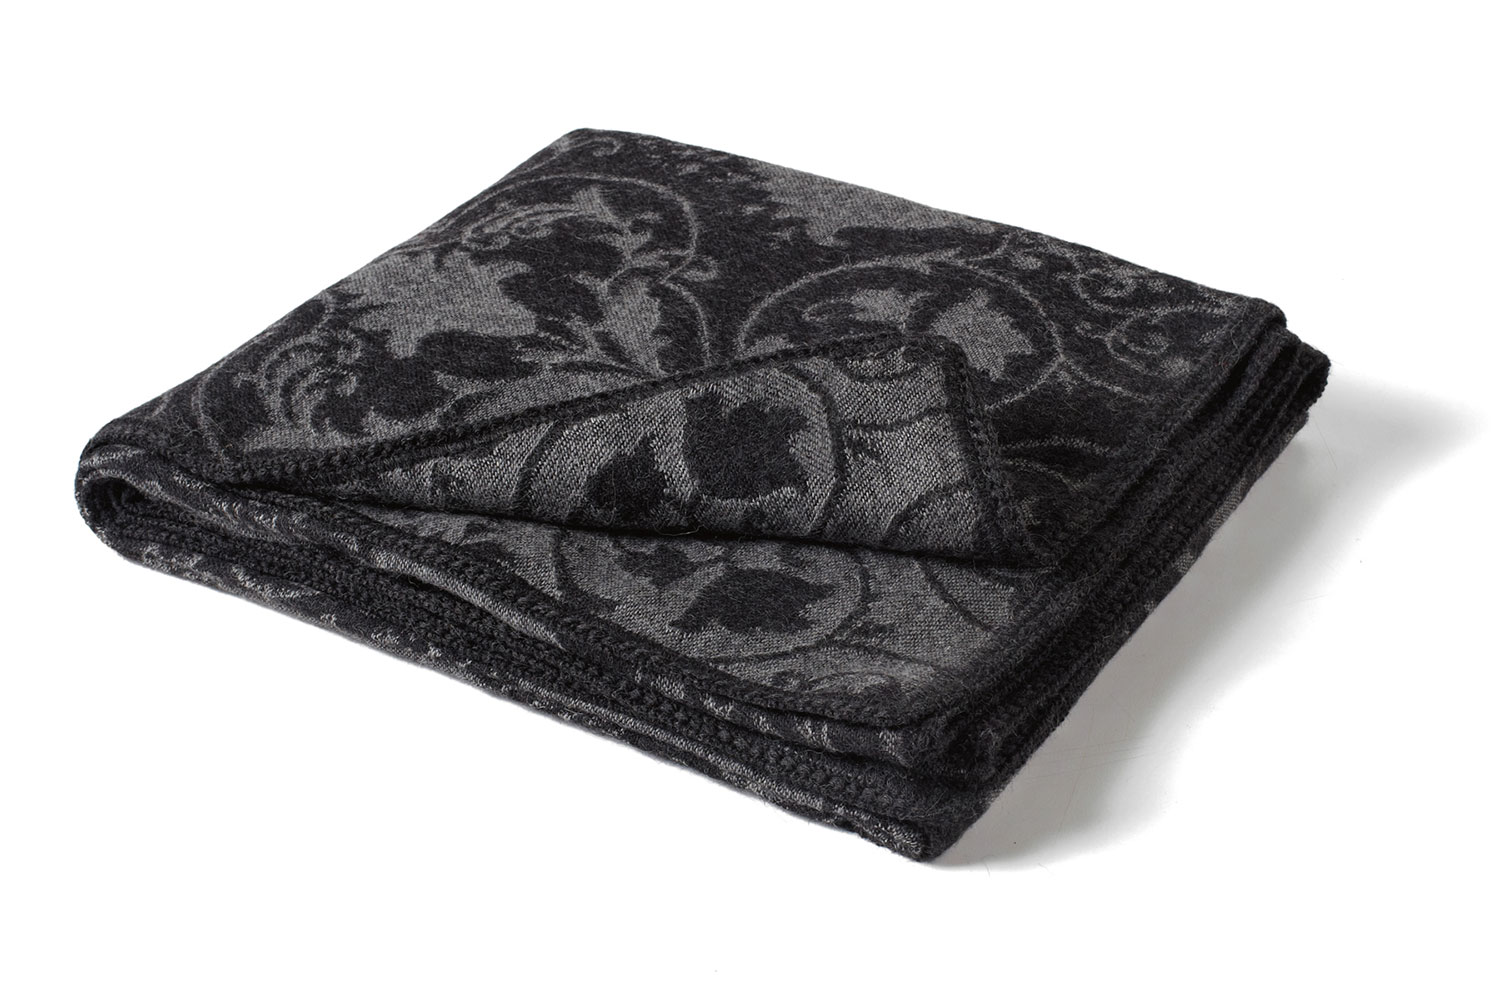 Toile Gray Alpaca Throw